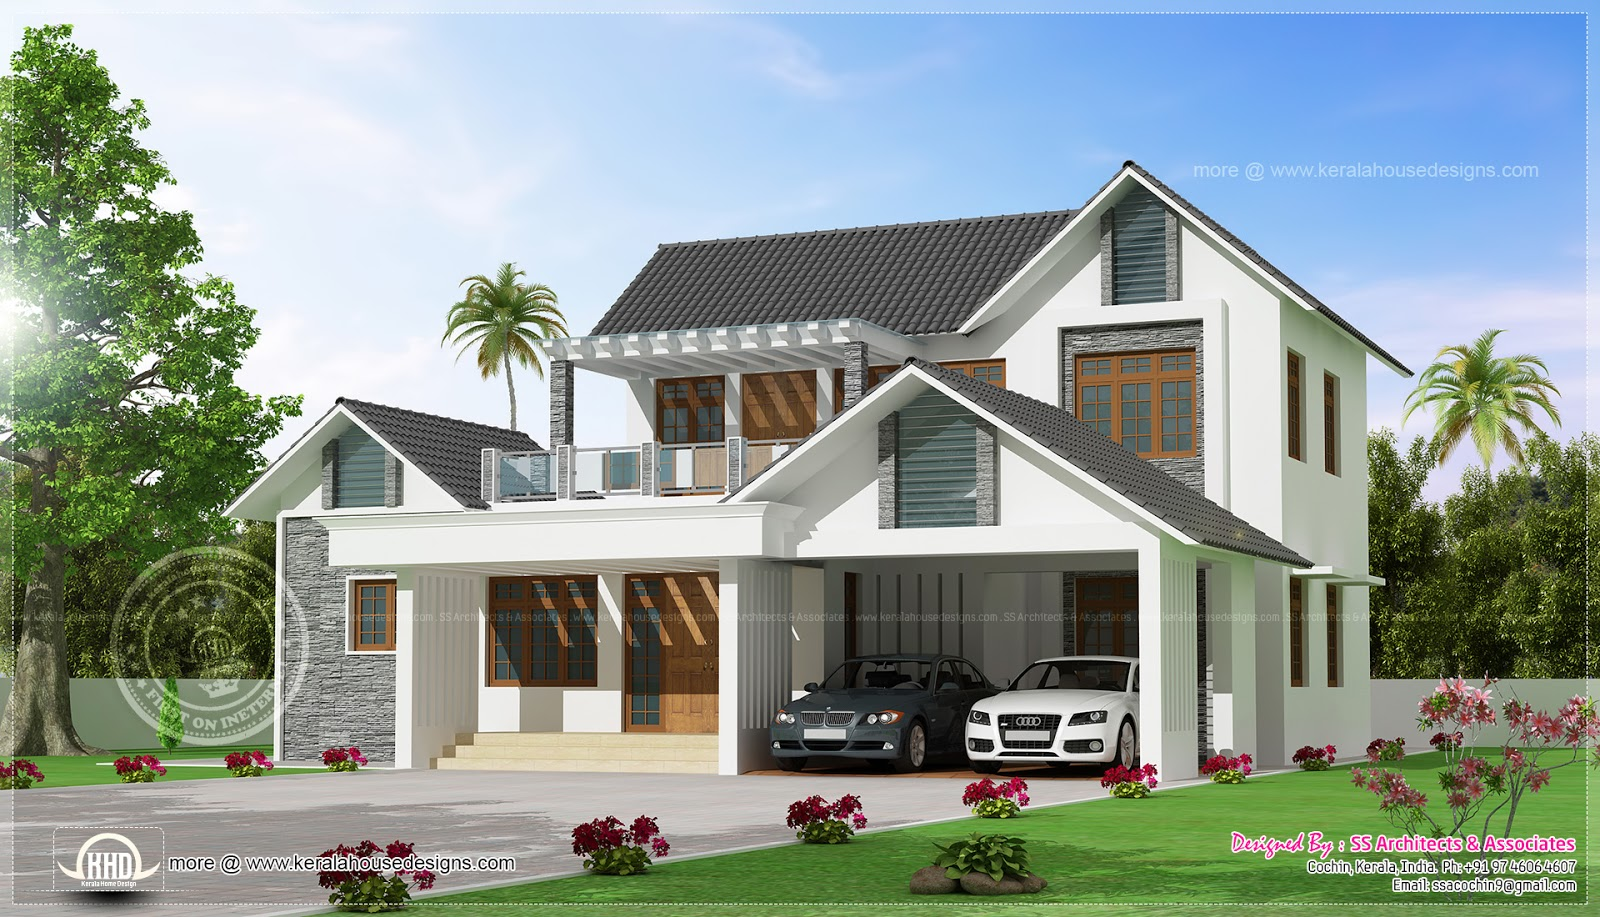 Awesome modern villa exterior elevation house design plans for Awesome modern houses